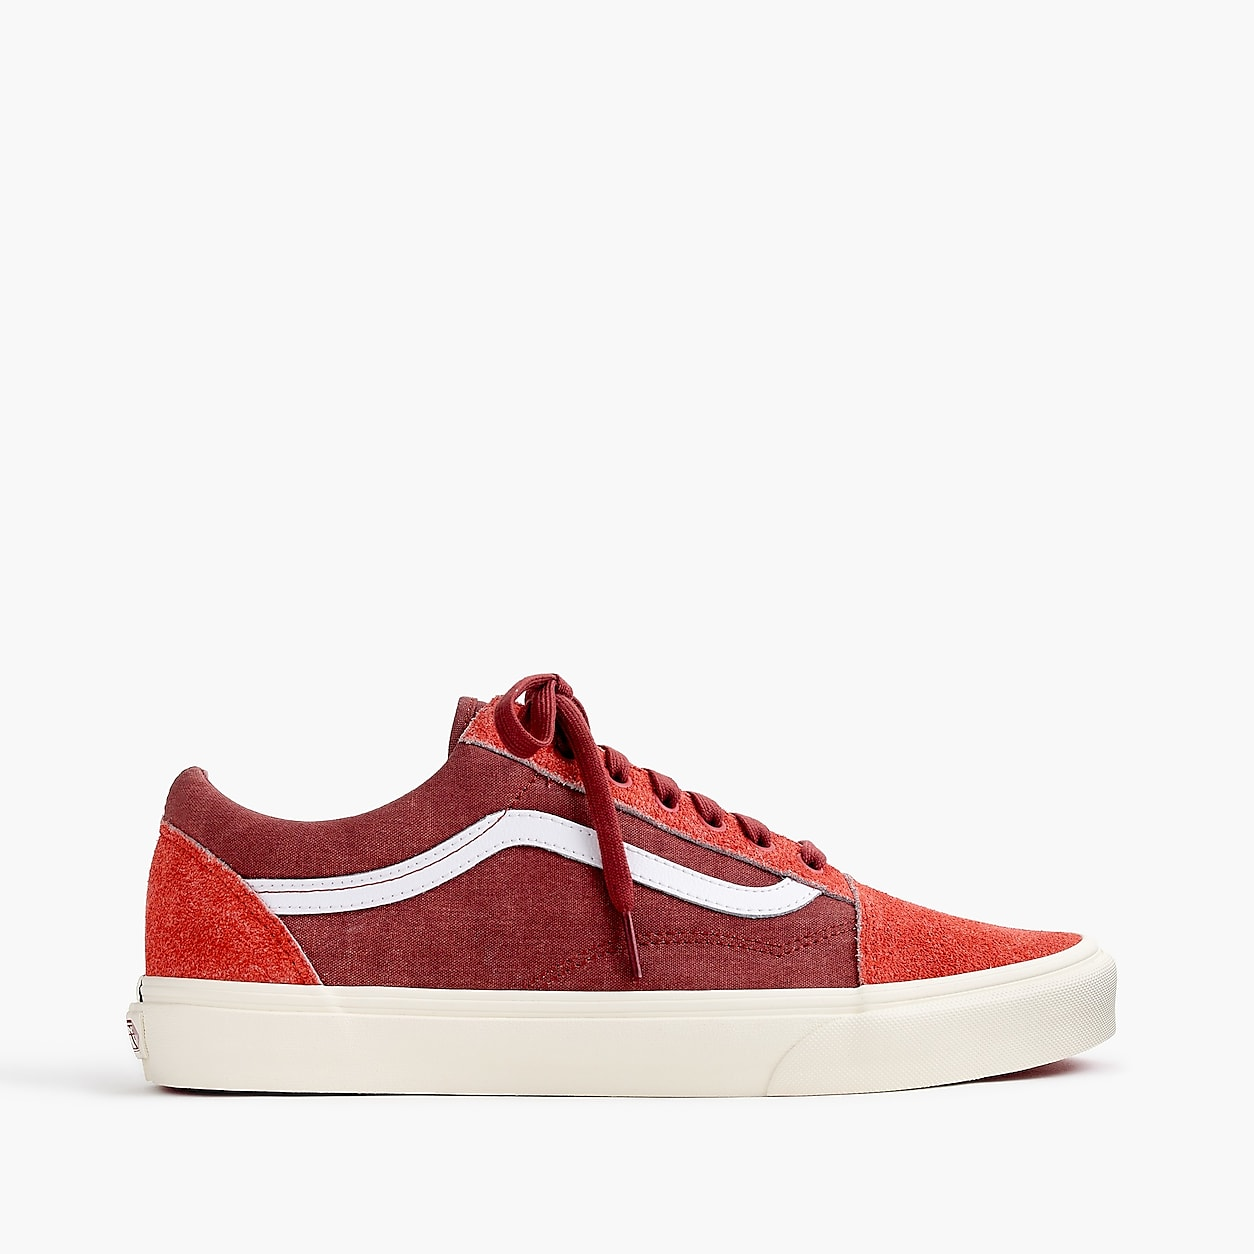 762941543481 Vans For J.Crew Old Skool Sneakers In Washed Canvas